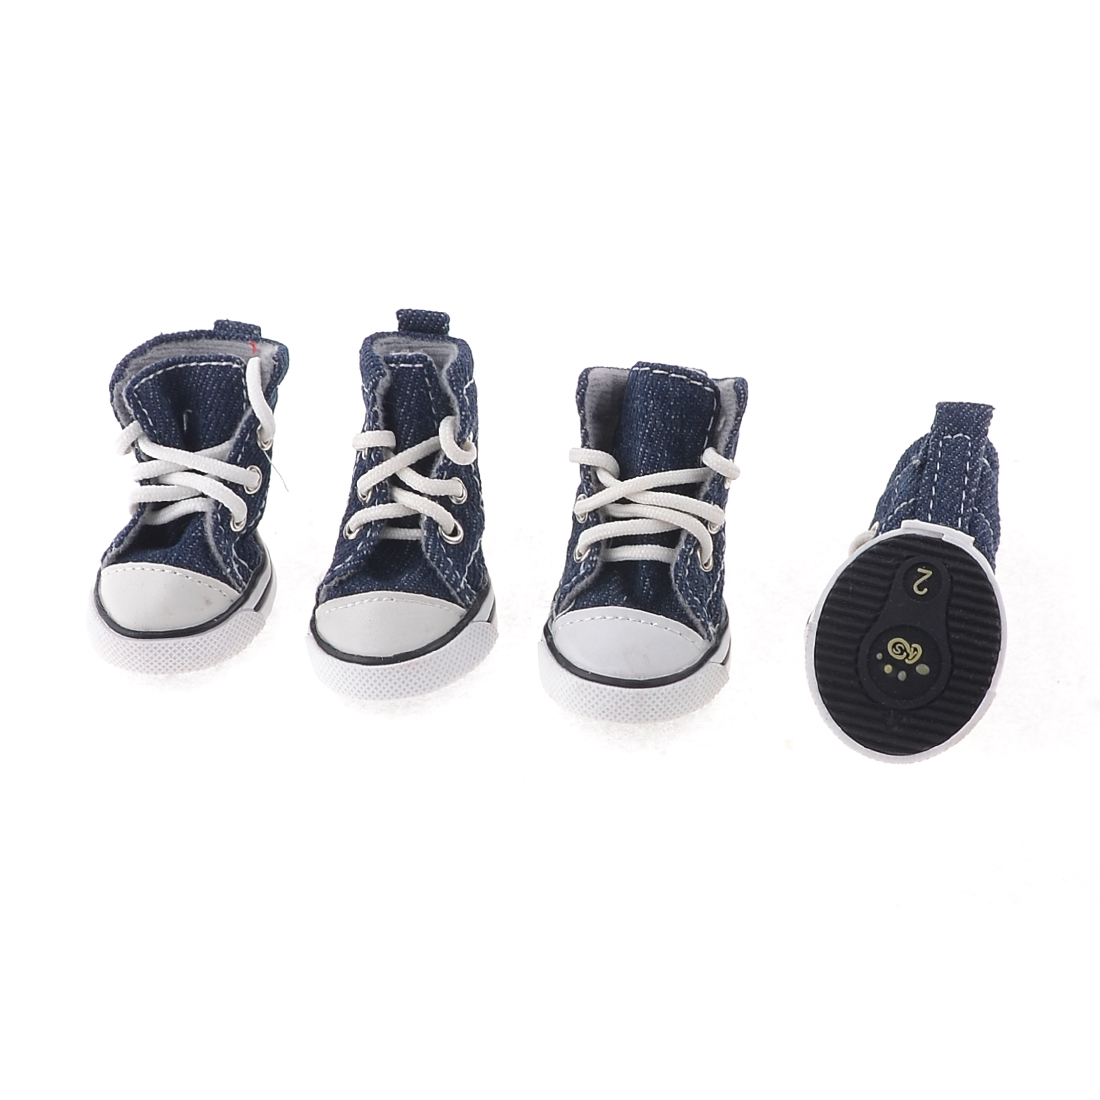 Pet Dog Chihuahua Navy Blue Running Rubber Sole Winter Sneakers Shoes Size XS